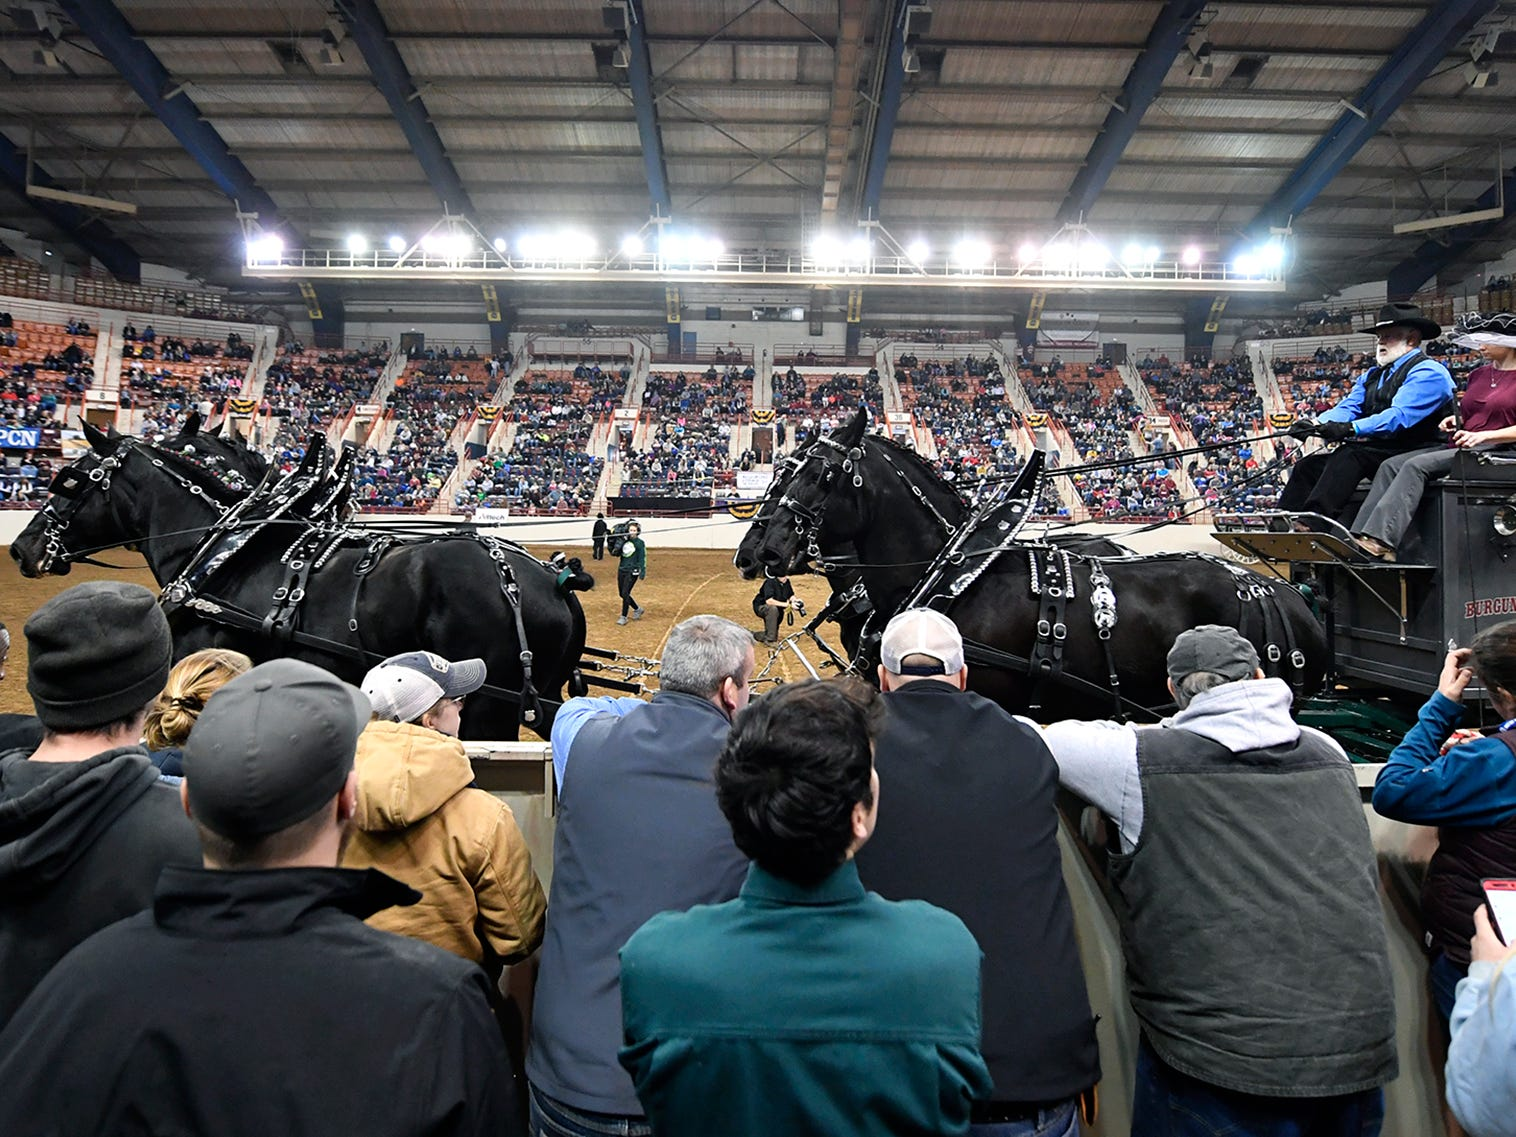 The four horse team from Burgundy Rose Farms in York trot past spectators during the Draft Horse Hitched Competition at the 103rd Pennsylvania Farm Show, Sunday, January 6, 2019. John A. Pavoncello photo